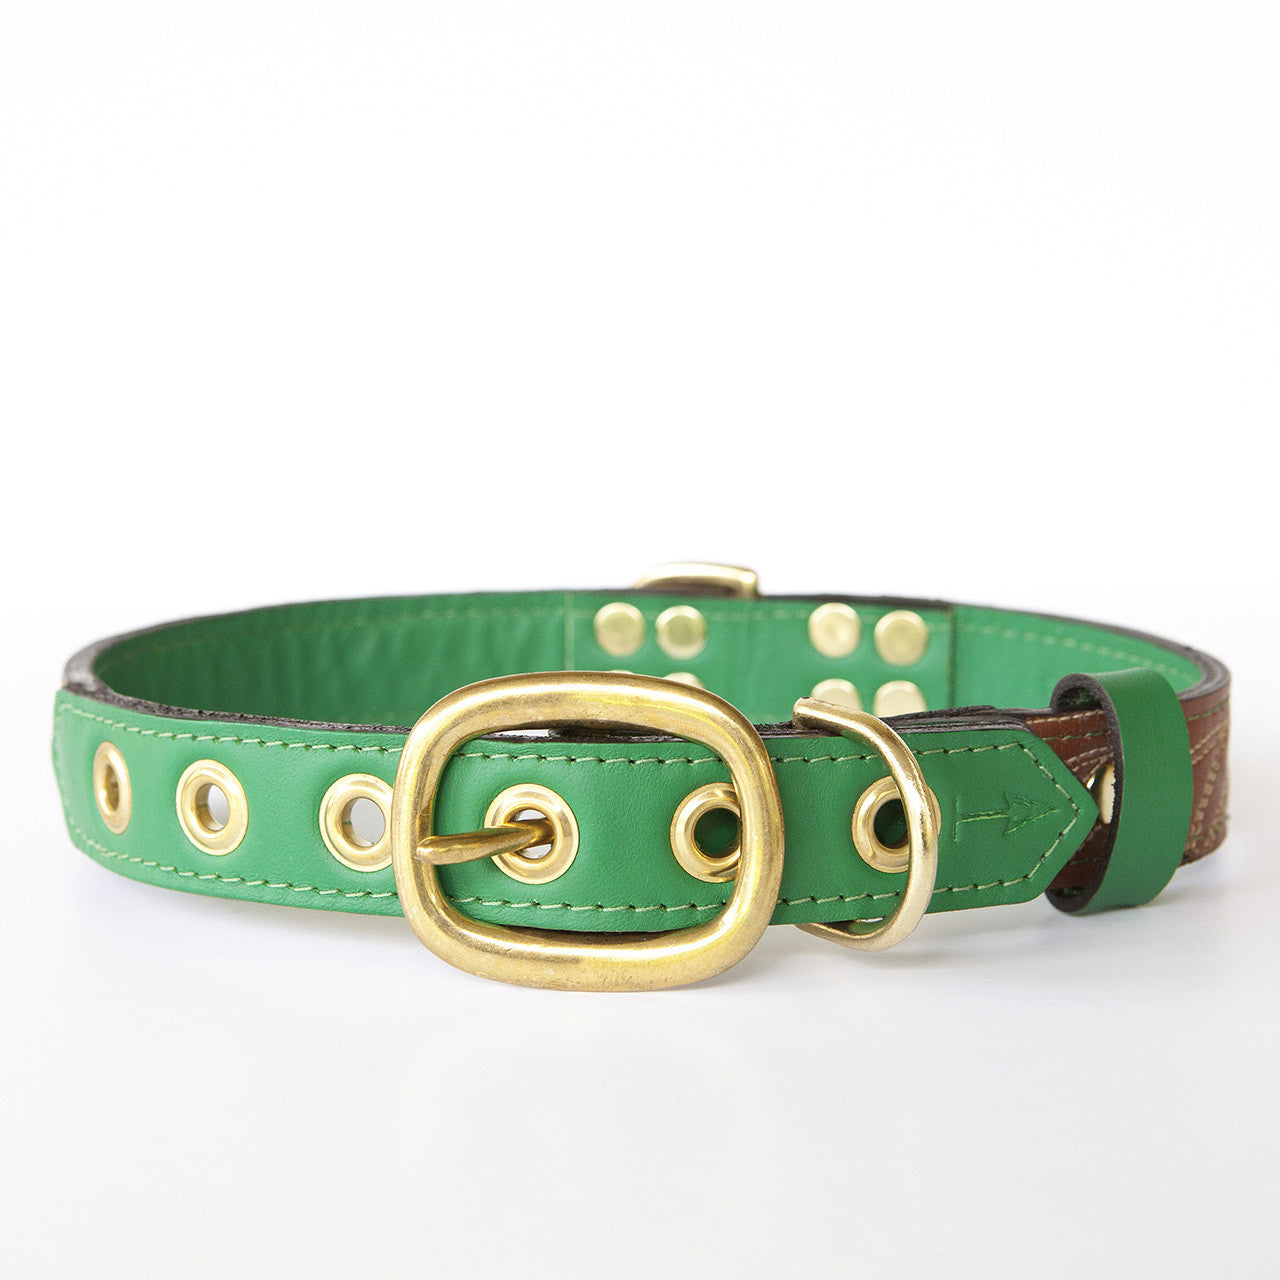 Emerald Green Dog Collar with Brown Leather + Ivory Stitching (back view)